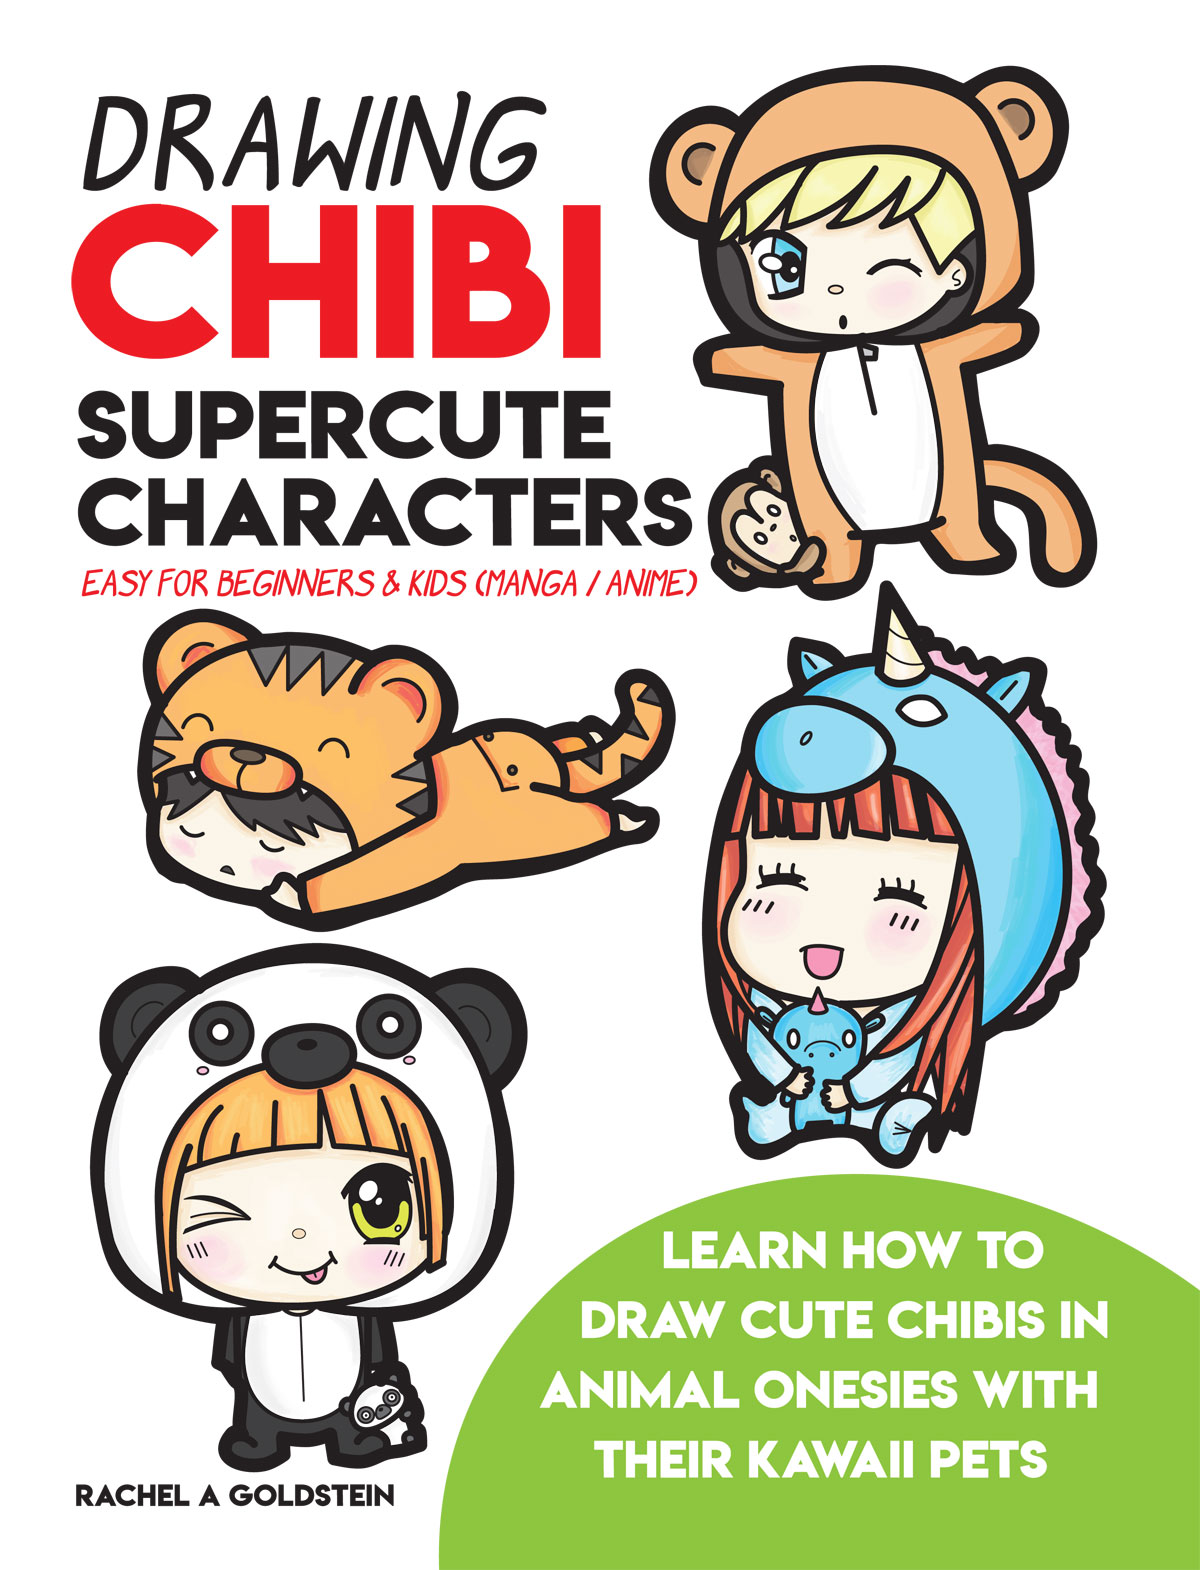 Free anime chibi drawing book for kindles if downloaded by november 25th